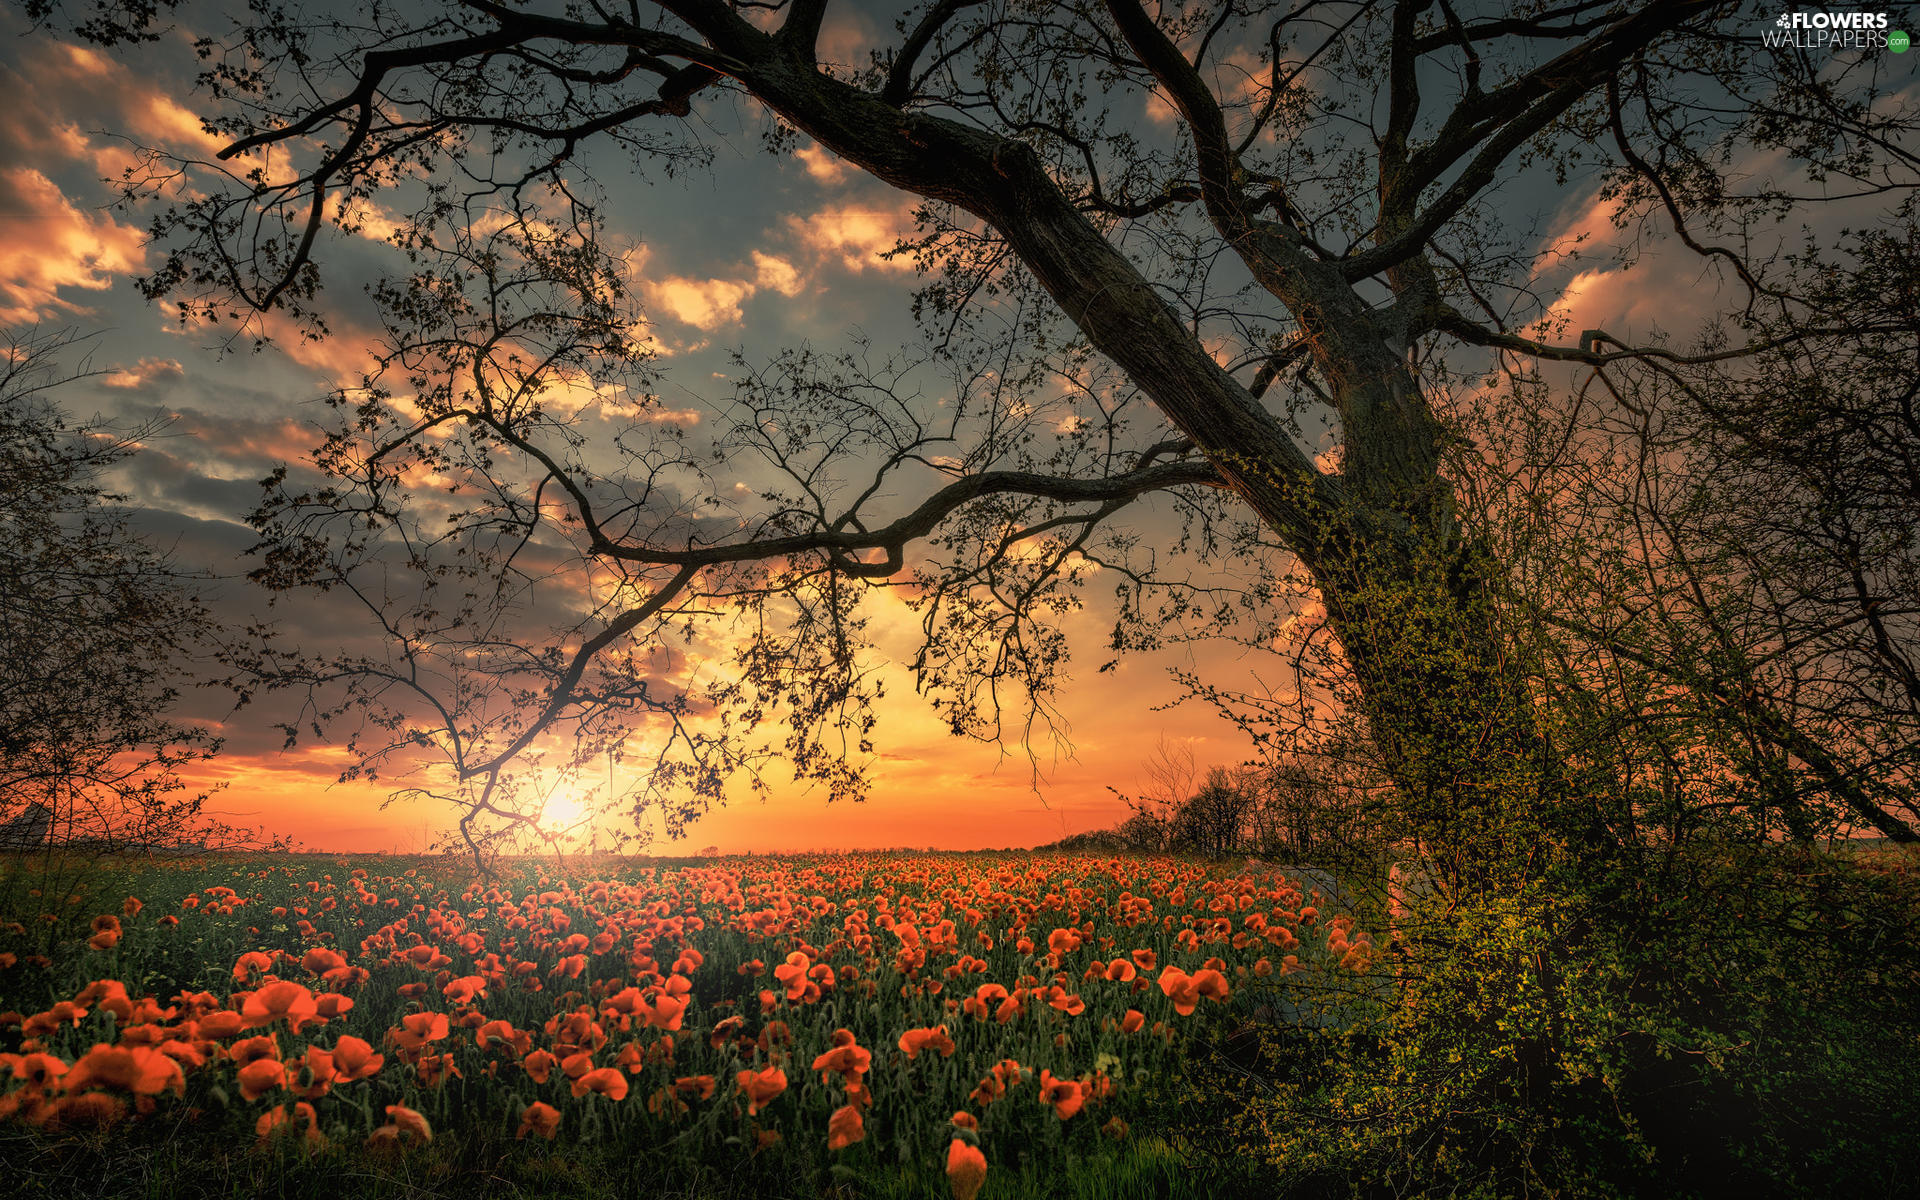 trees, Flowers, clouds, papavers, Field, branch pics, Great Sunsets